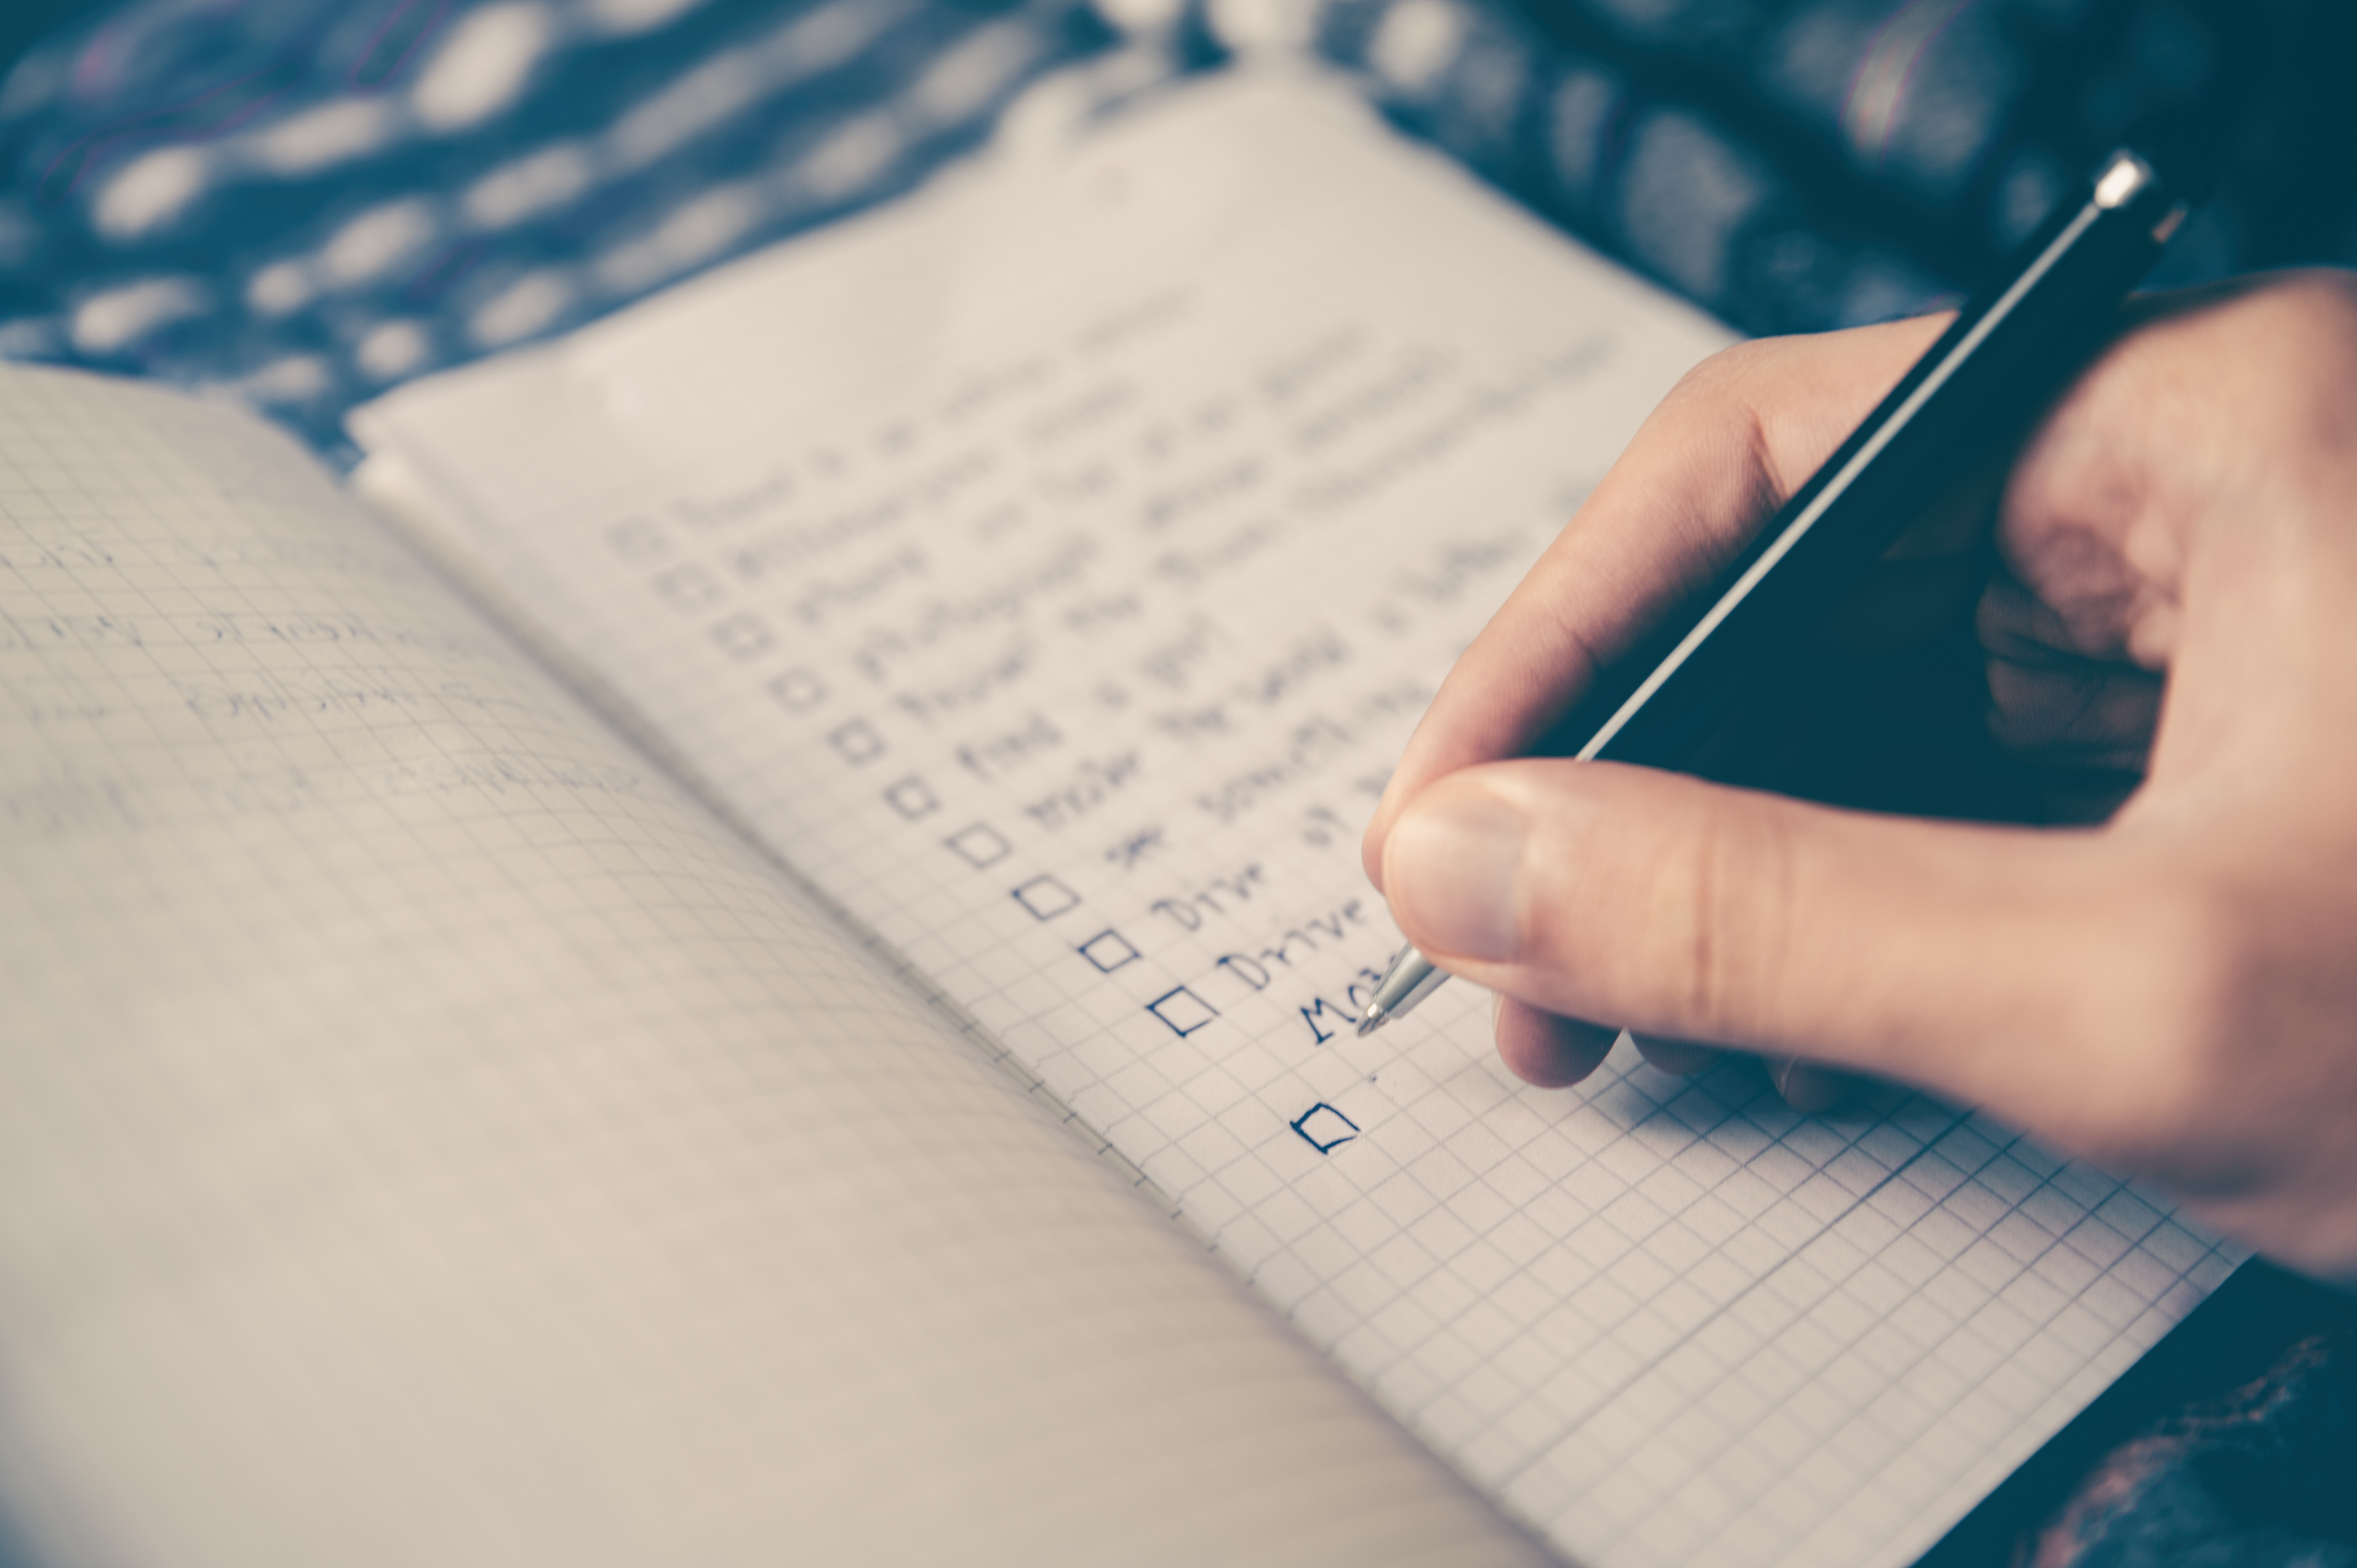 Person writing a checklist with a pen in a notebook